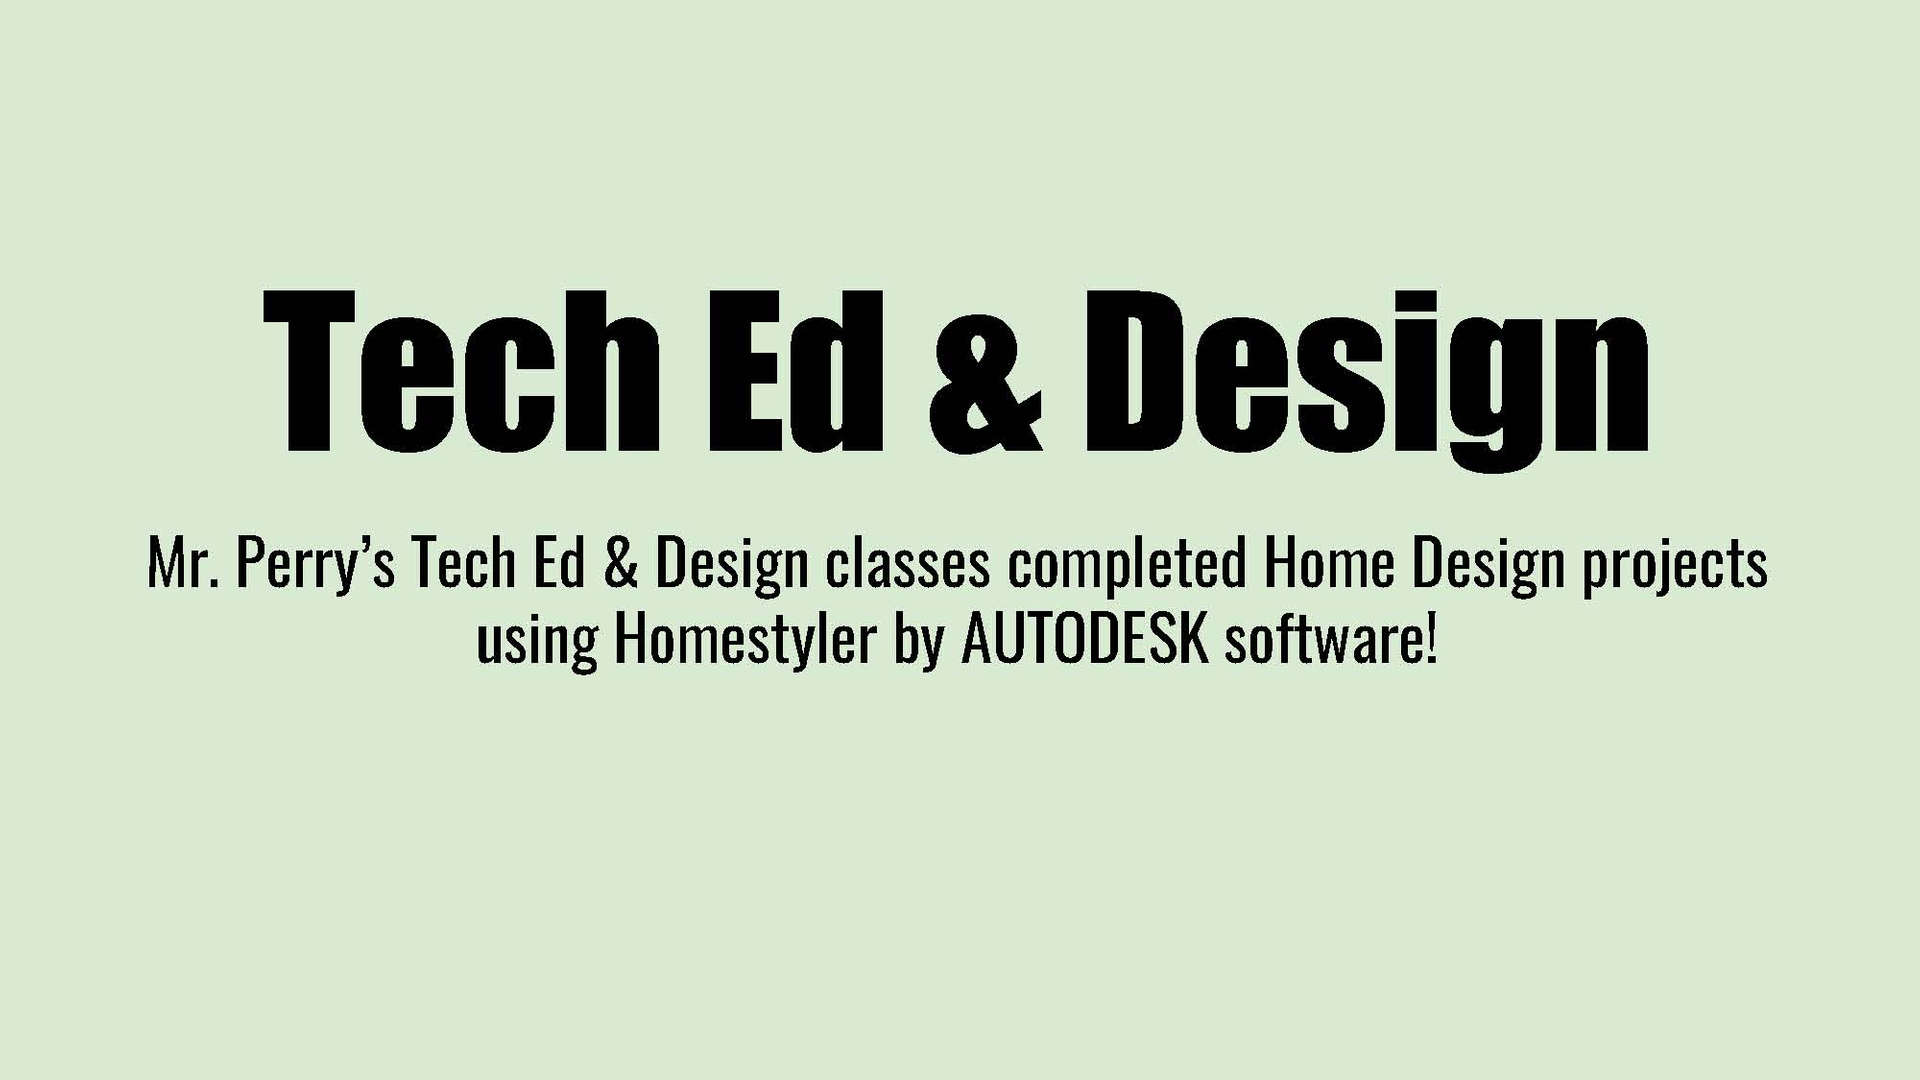 Tech Ed and Design